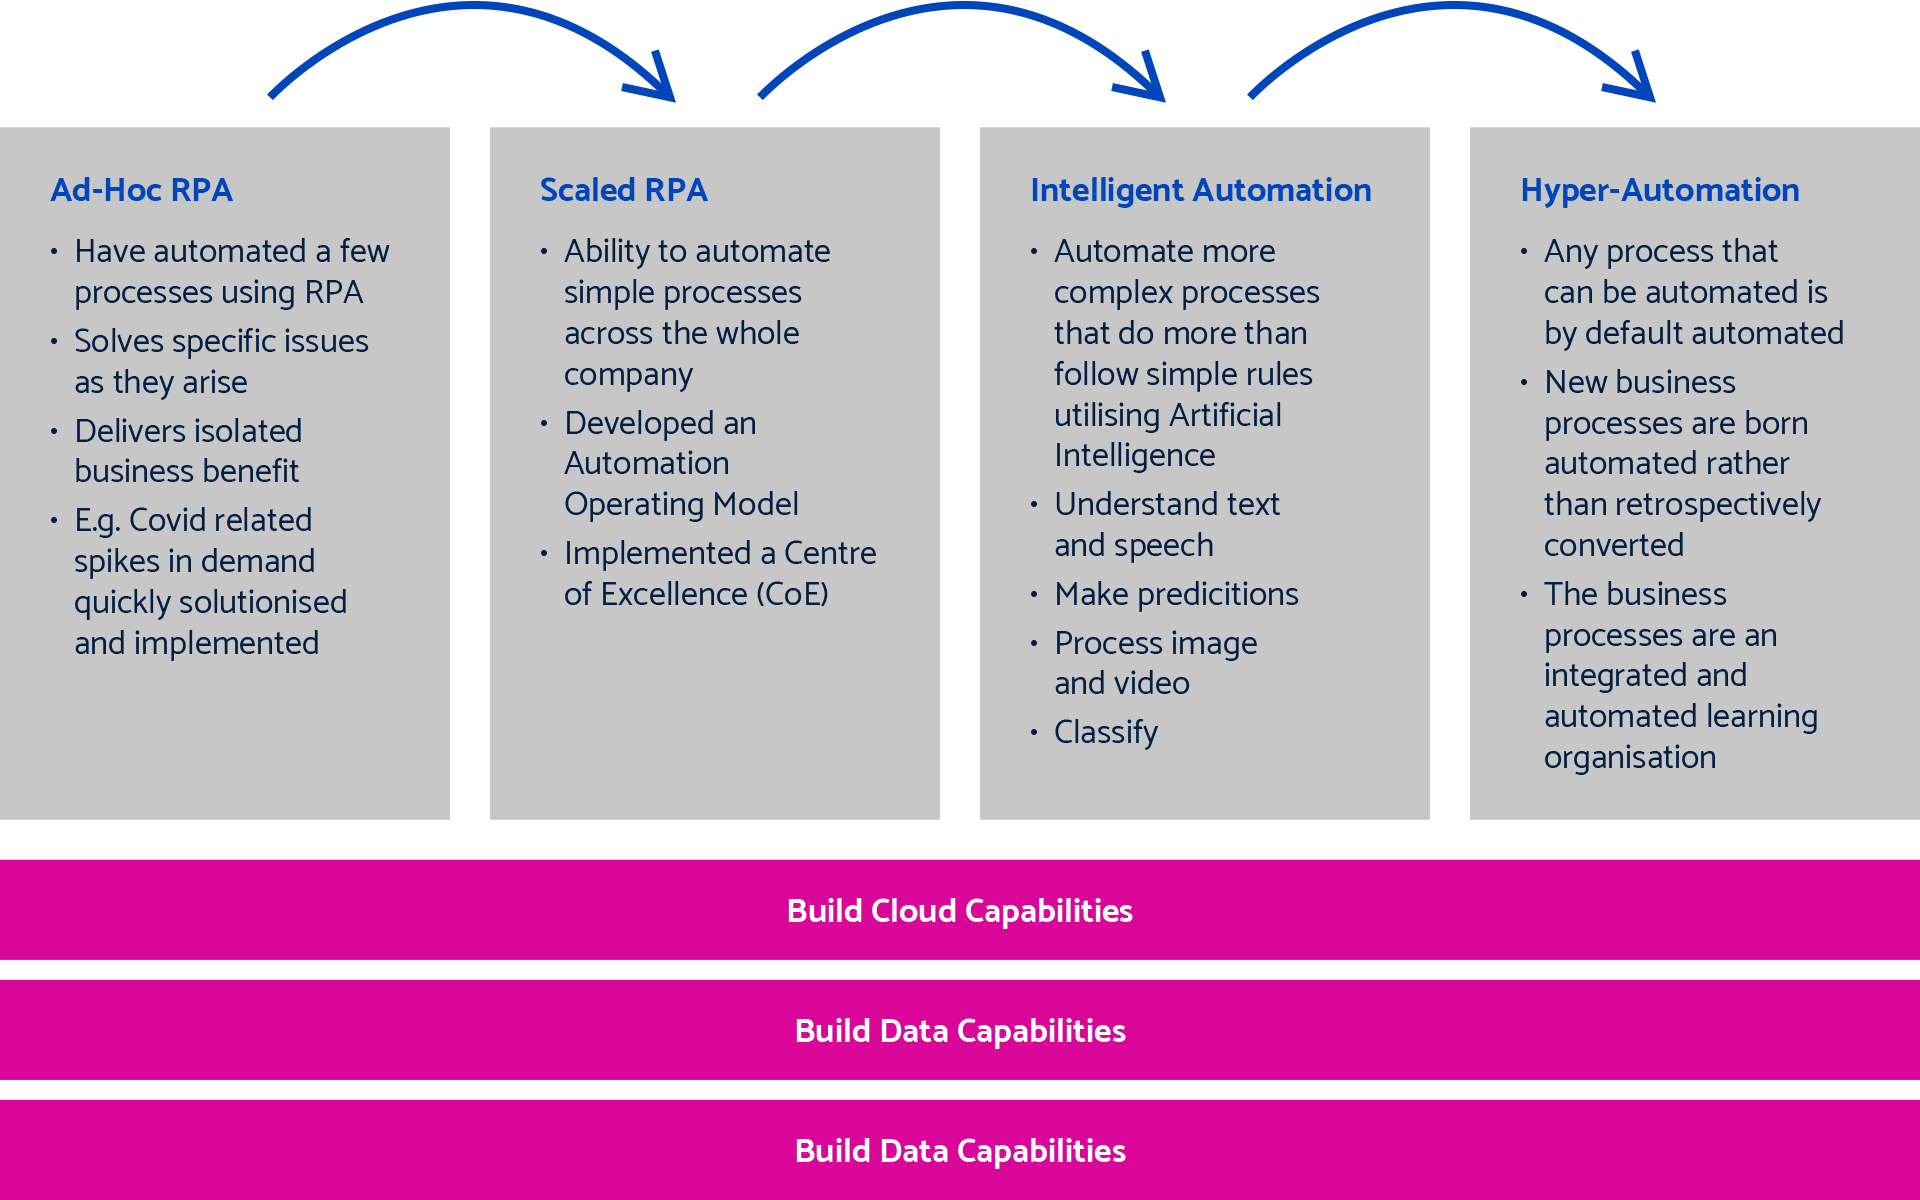 The-Path-to-HyperAutomation-RPA-Graphic-2